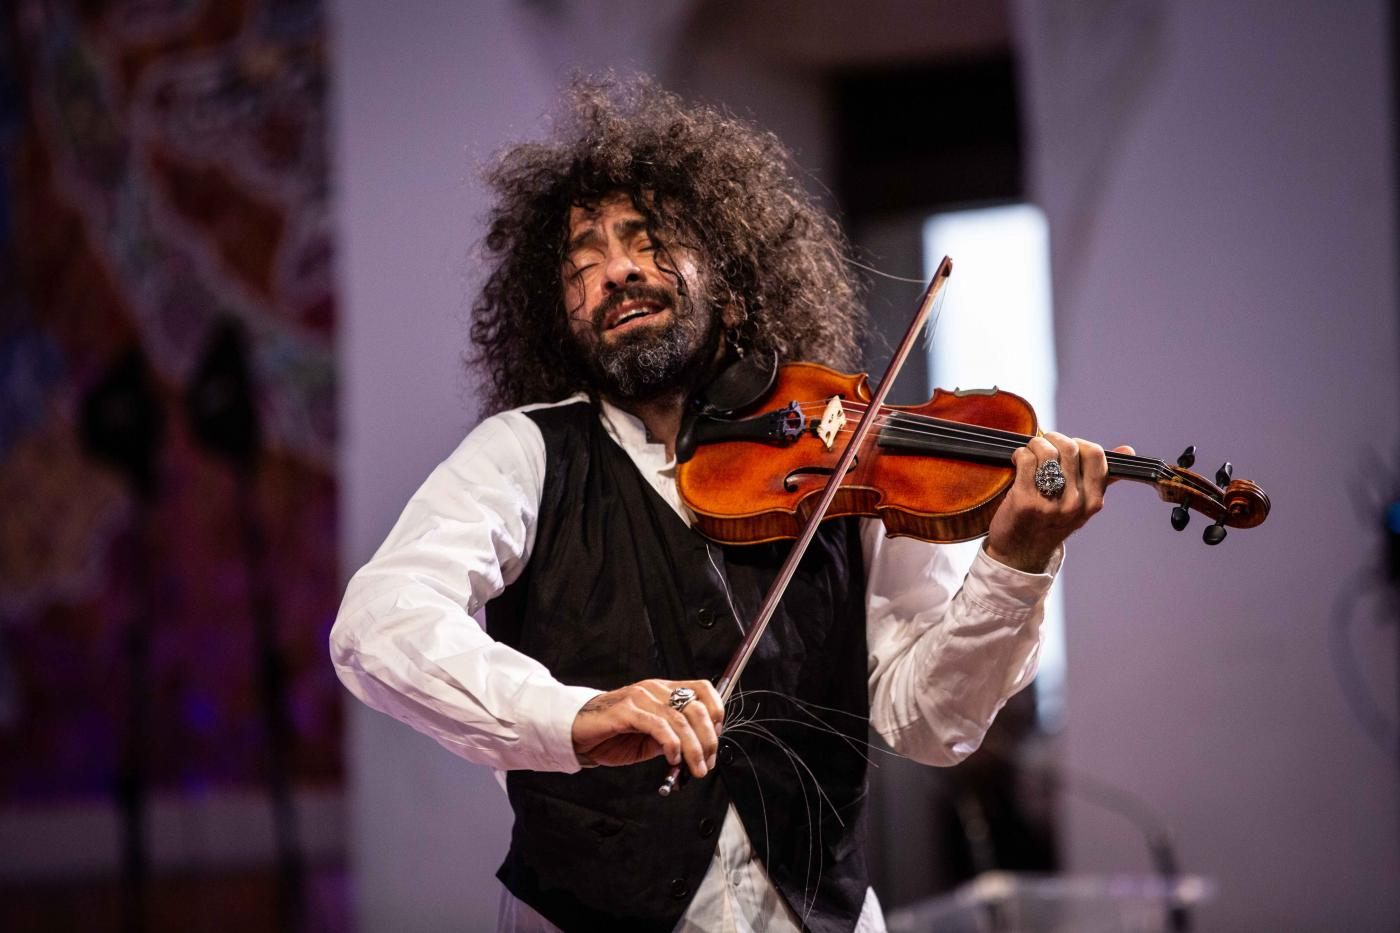 Ara Malikian estará en Málaga gira. David Zorrakino/Europa Press